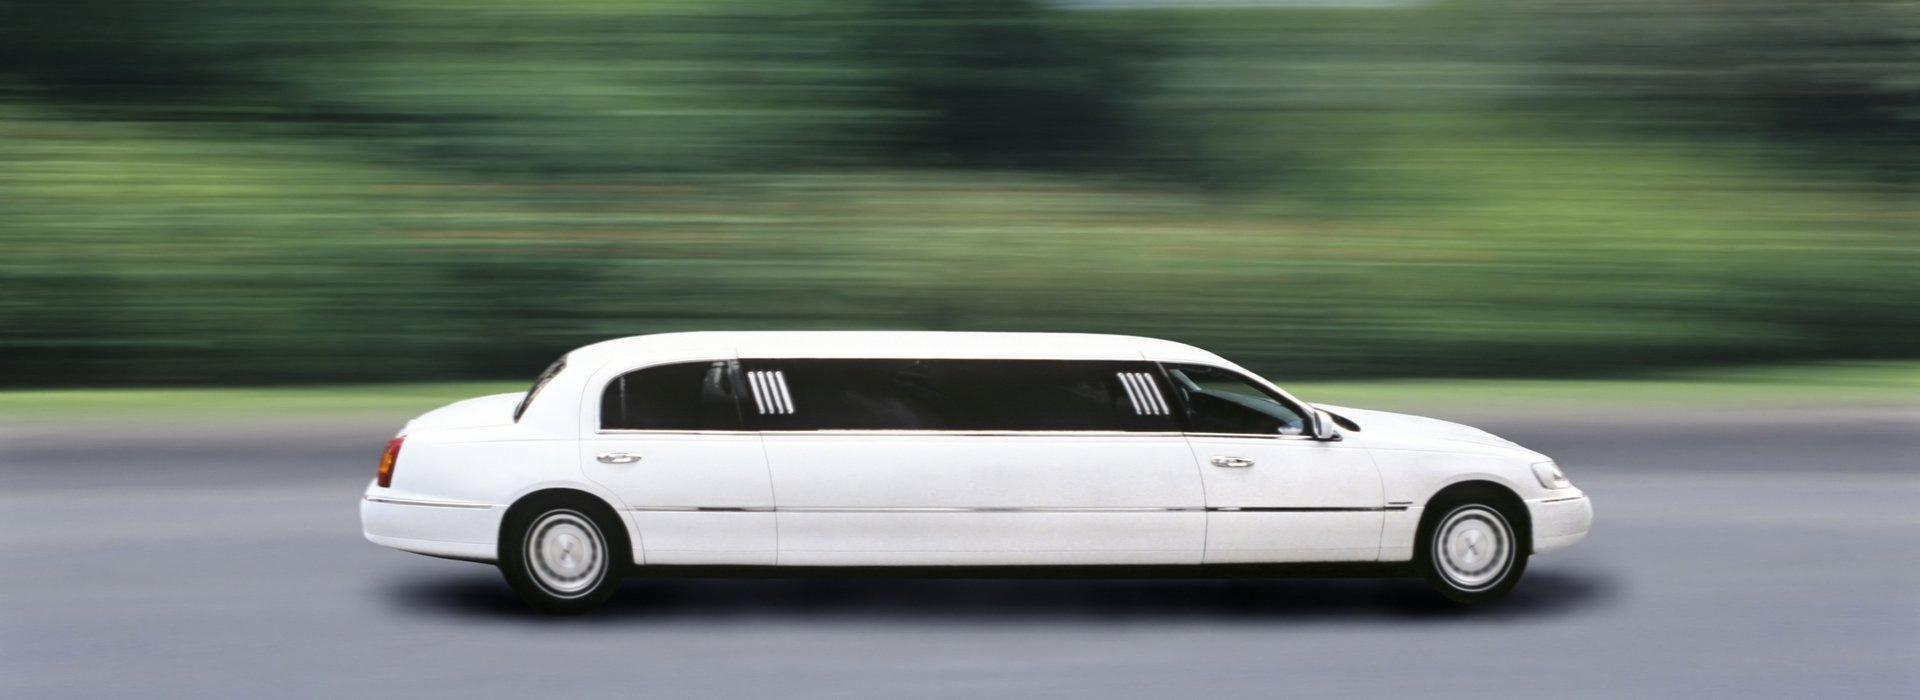 Limousinedienst